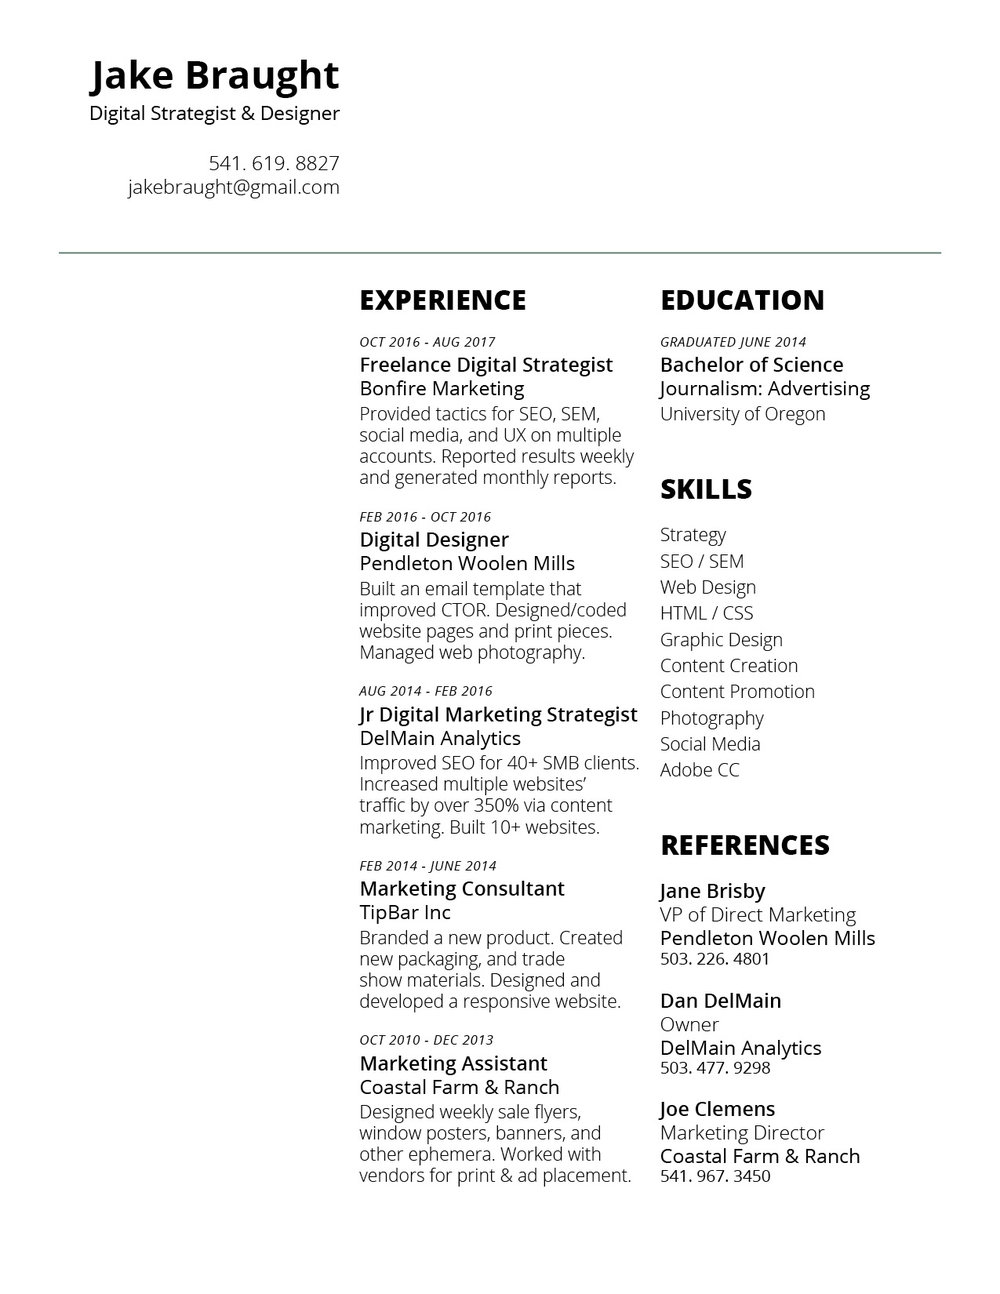 Jake Braught Resume  Digital Strategist Resume